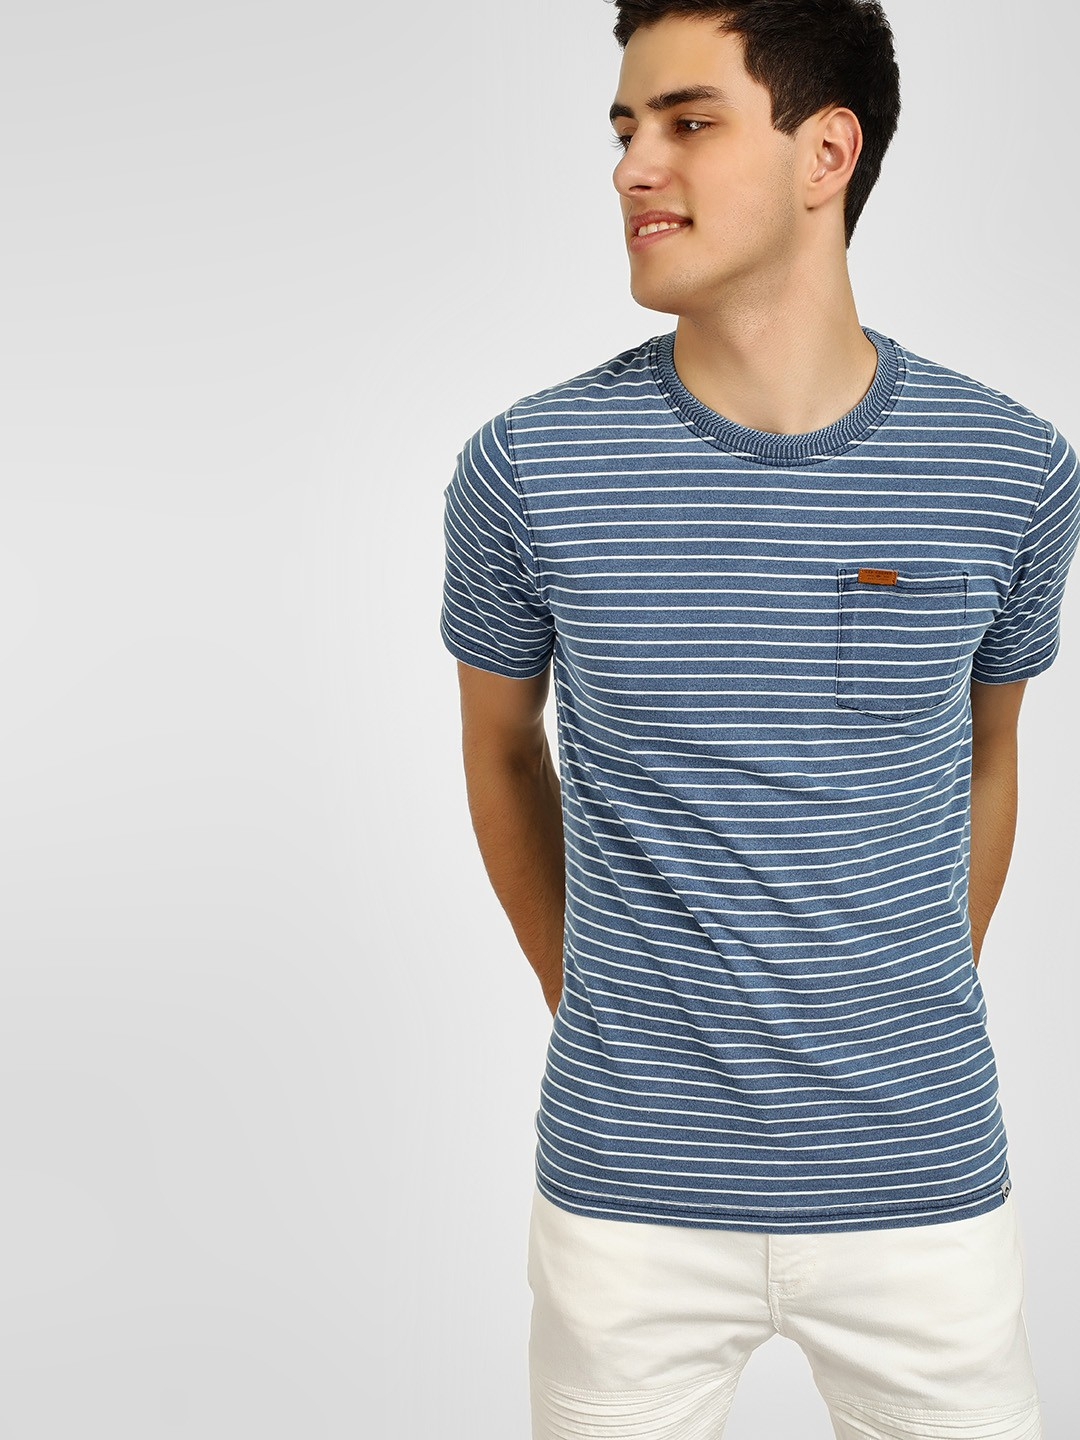 Lee Cooper Blue Yarn Dyed Striped T-Shirt 1